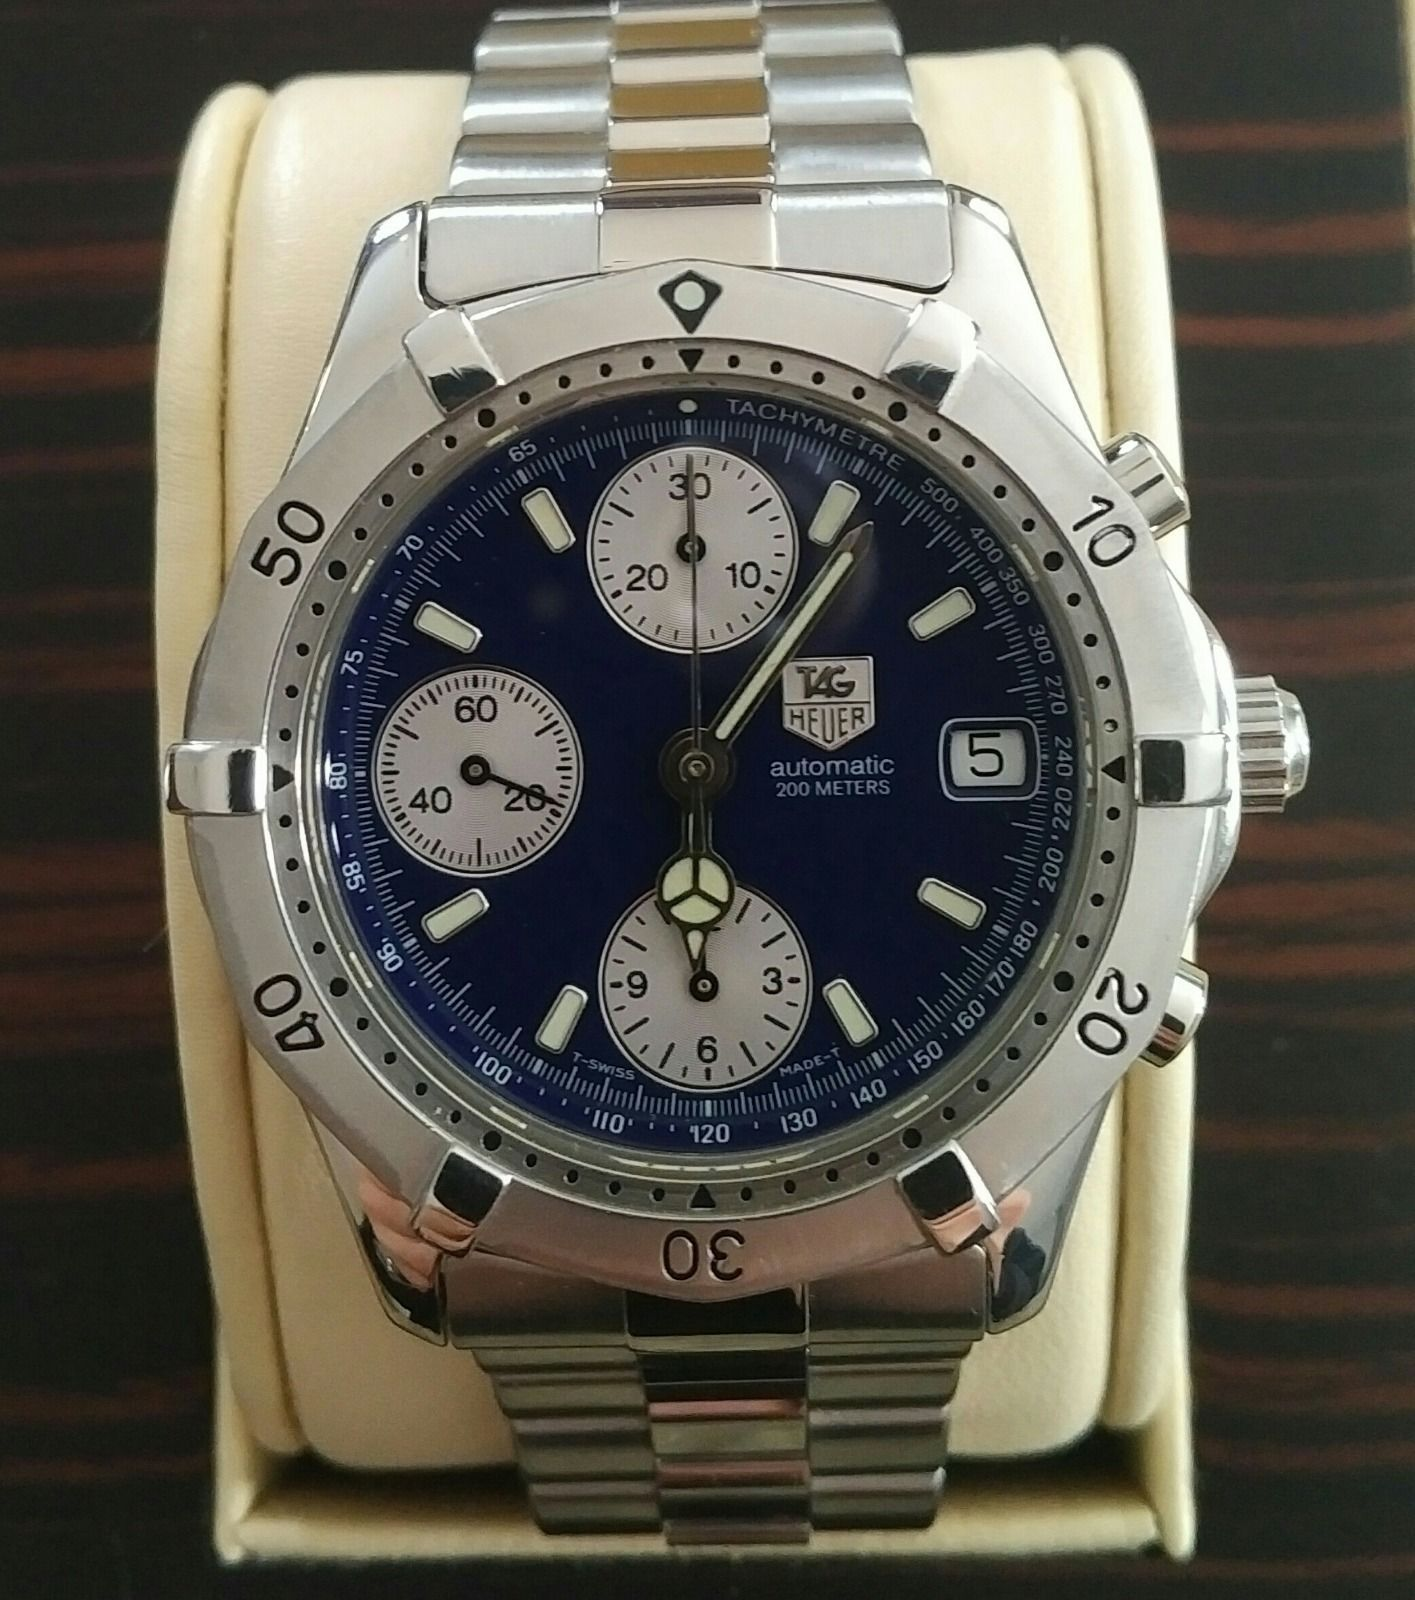 Tag heuer 2000 automatic chronograph ck2111 rare classic many extras tag heuer for Tag heuer automatic